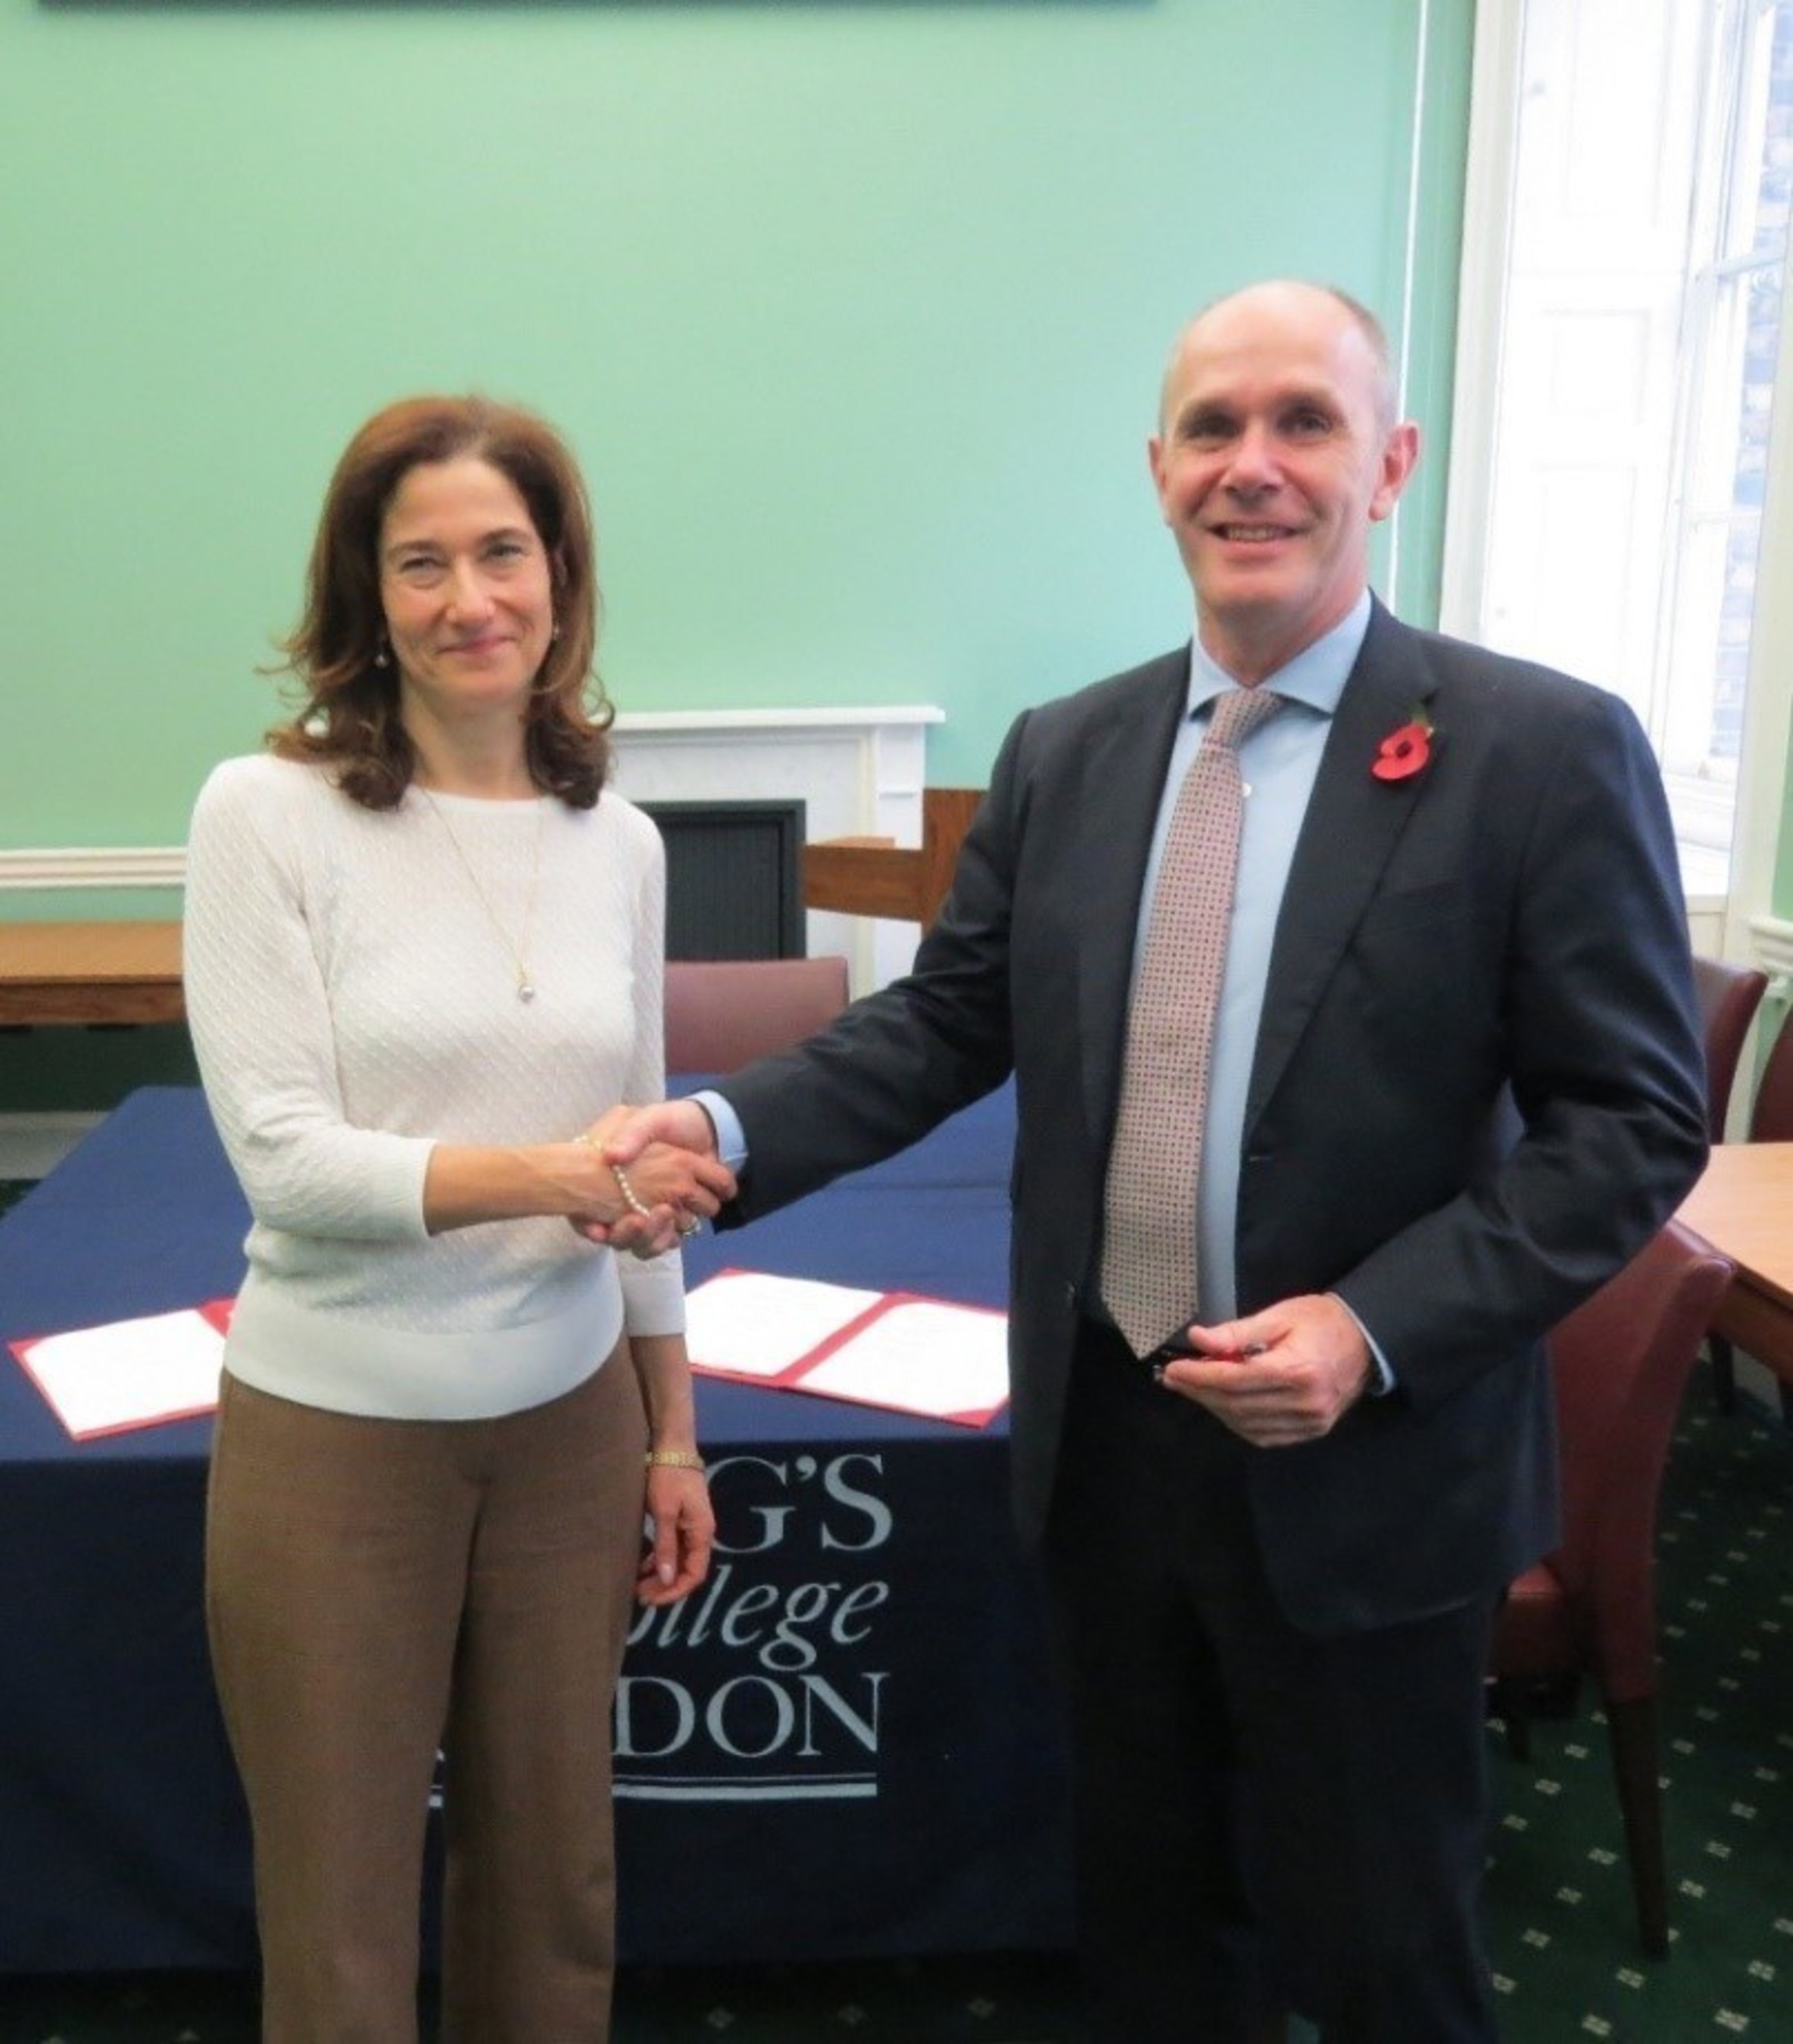 Dr Joanna Newman MBE, Vice Principal (International) King's College London and Andrew Fitzmaurice, CEO, Nord Anglia Education